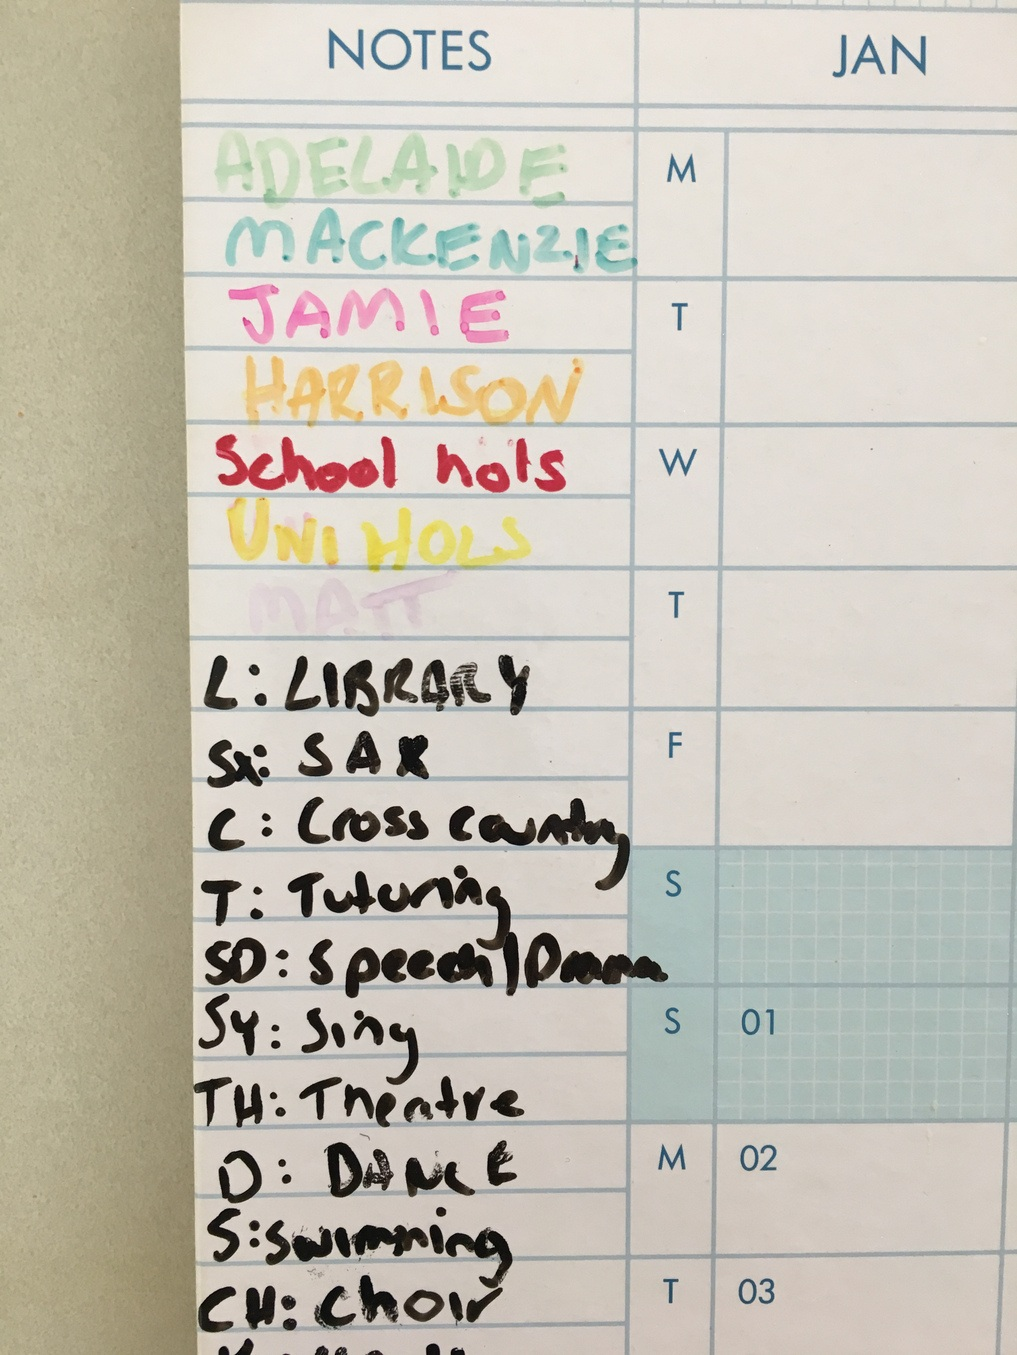 Organising multiple school schedules